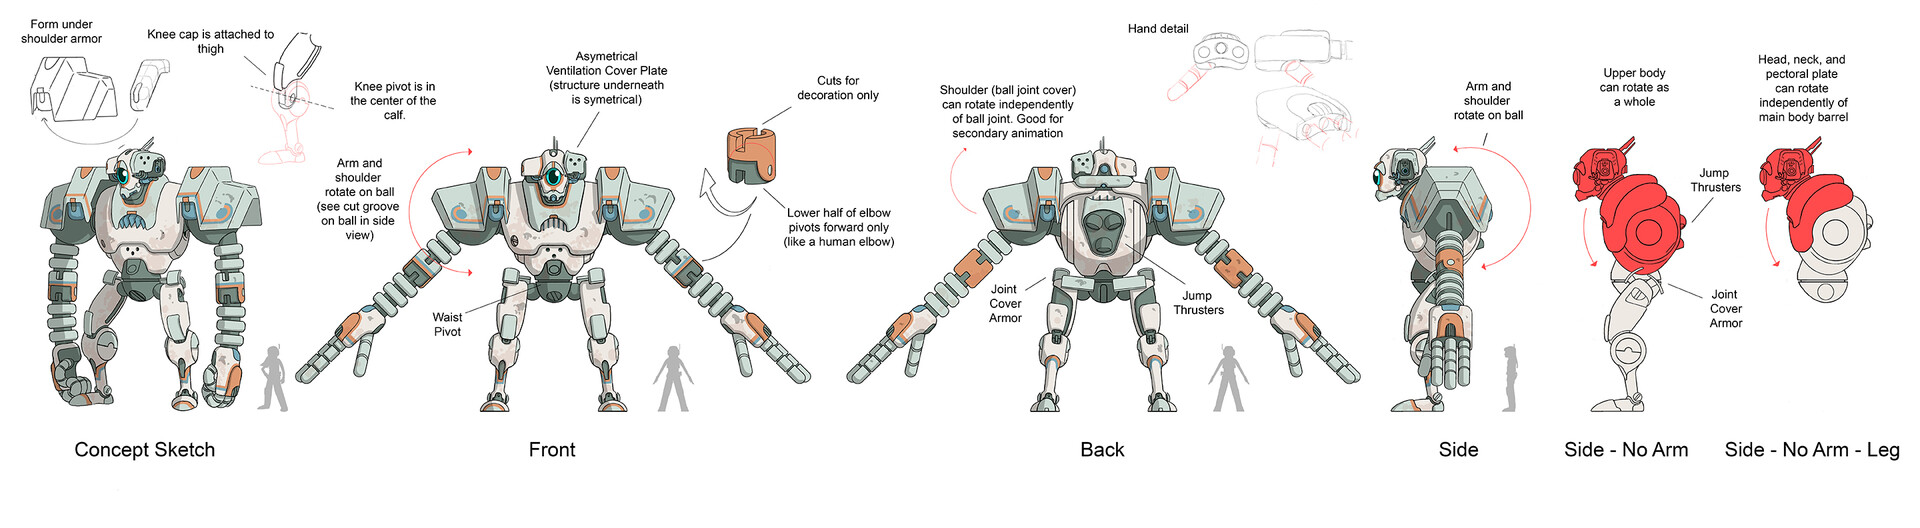 Hero Robot Design - Model Sheet